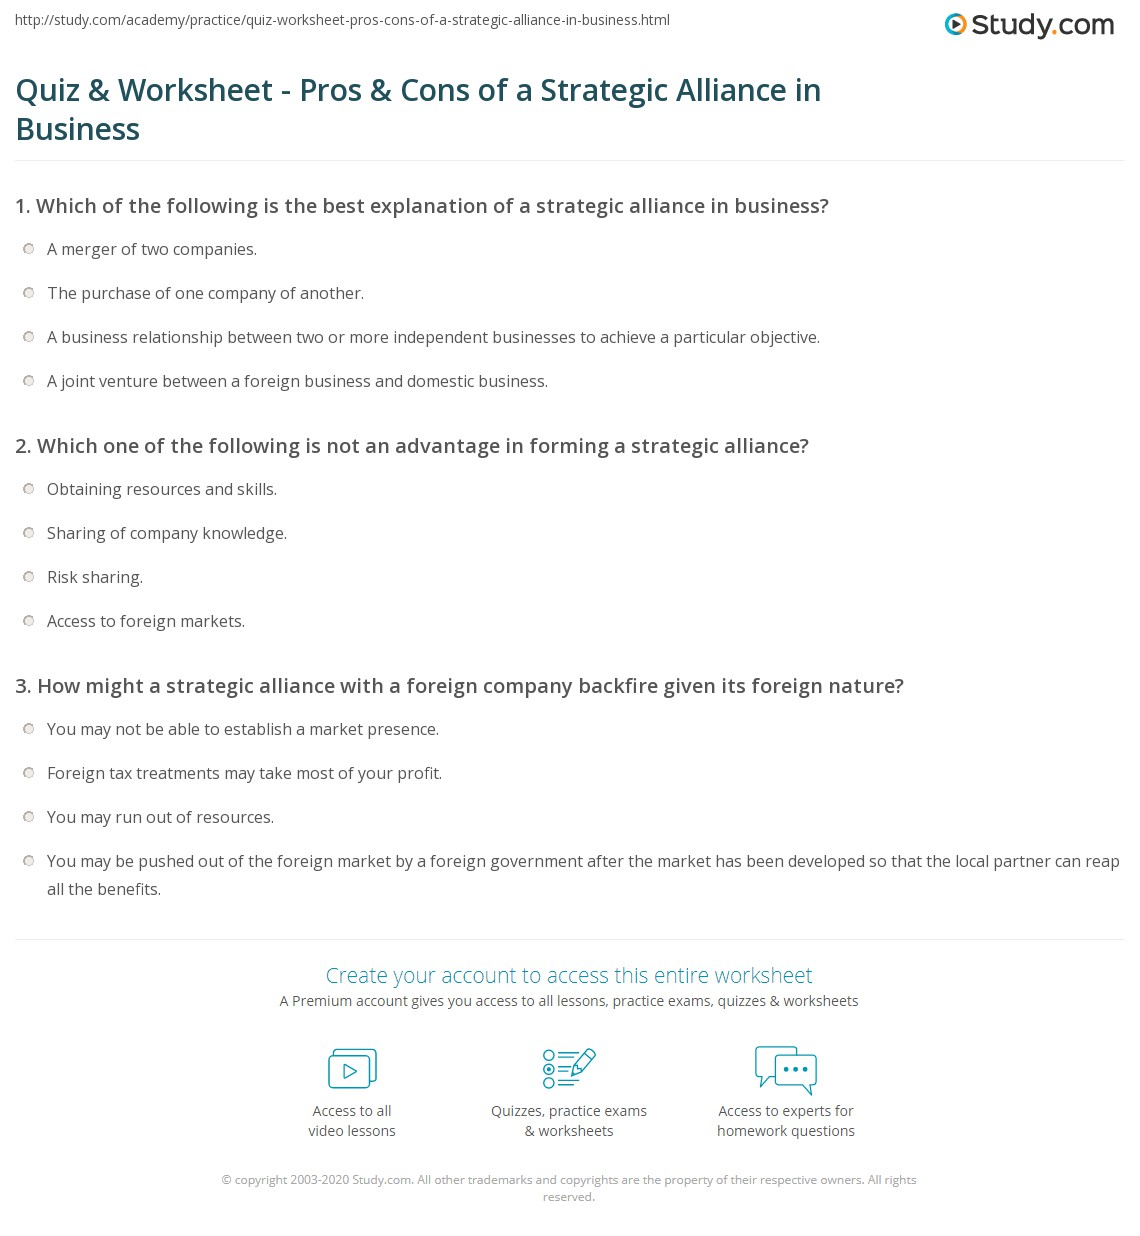 quiz & worksheet - pros & cons of a strategic alliance in business